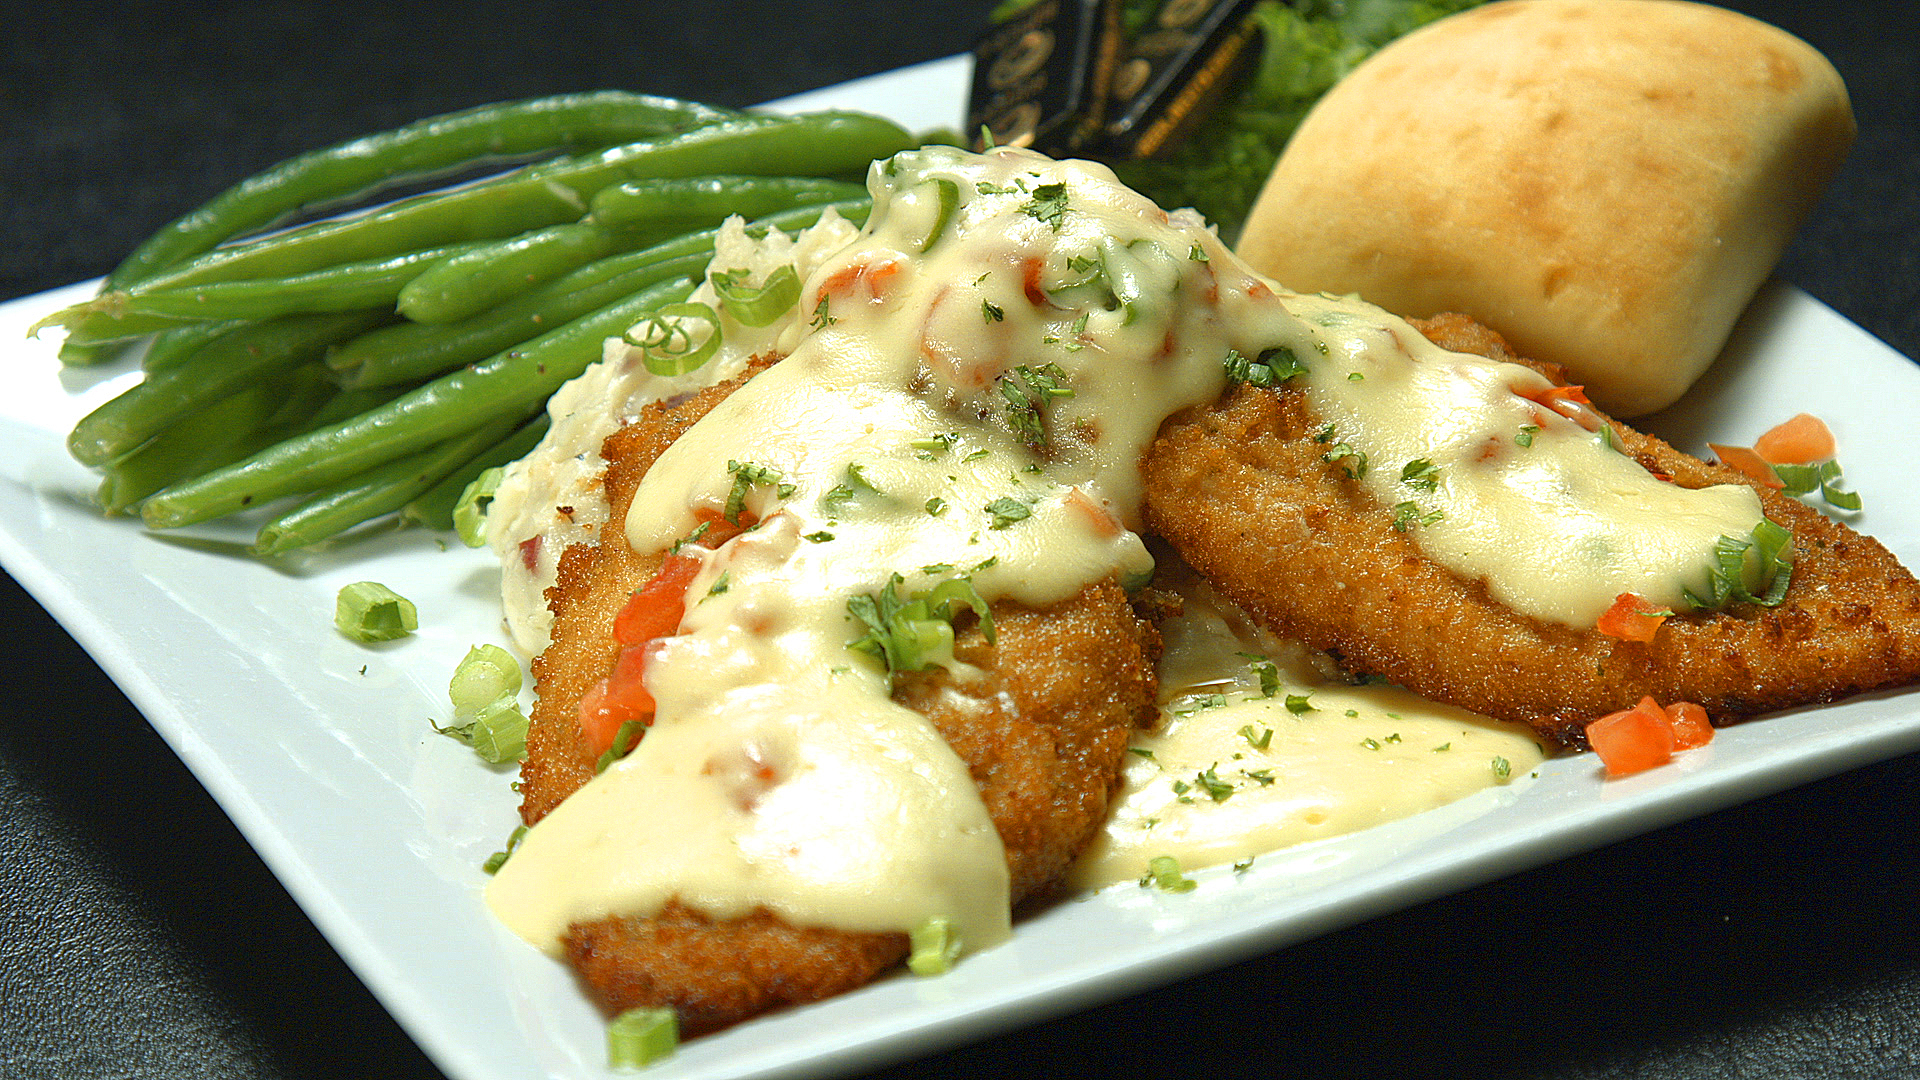 fried fish with a white sauce on top and green beans and bread on the side